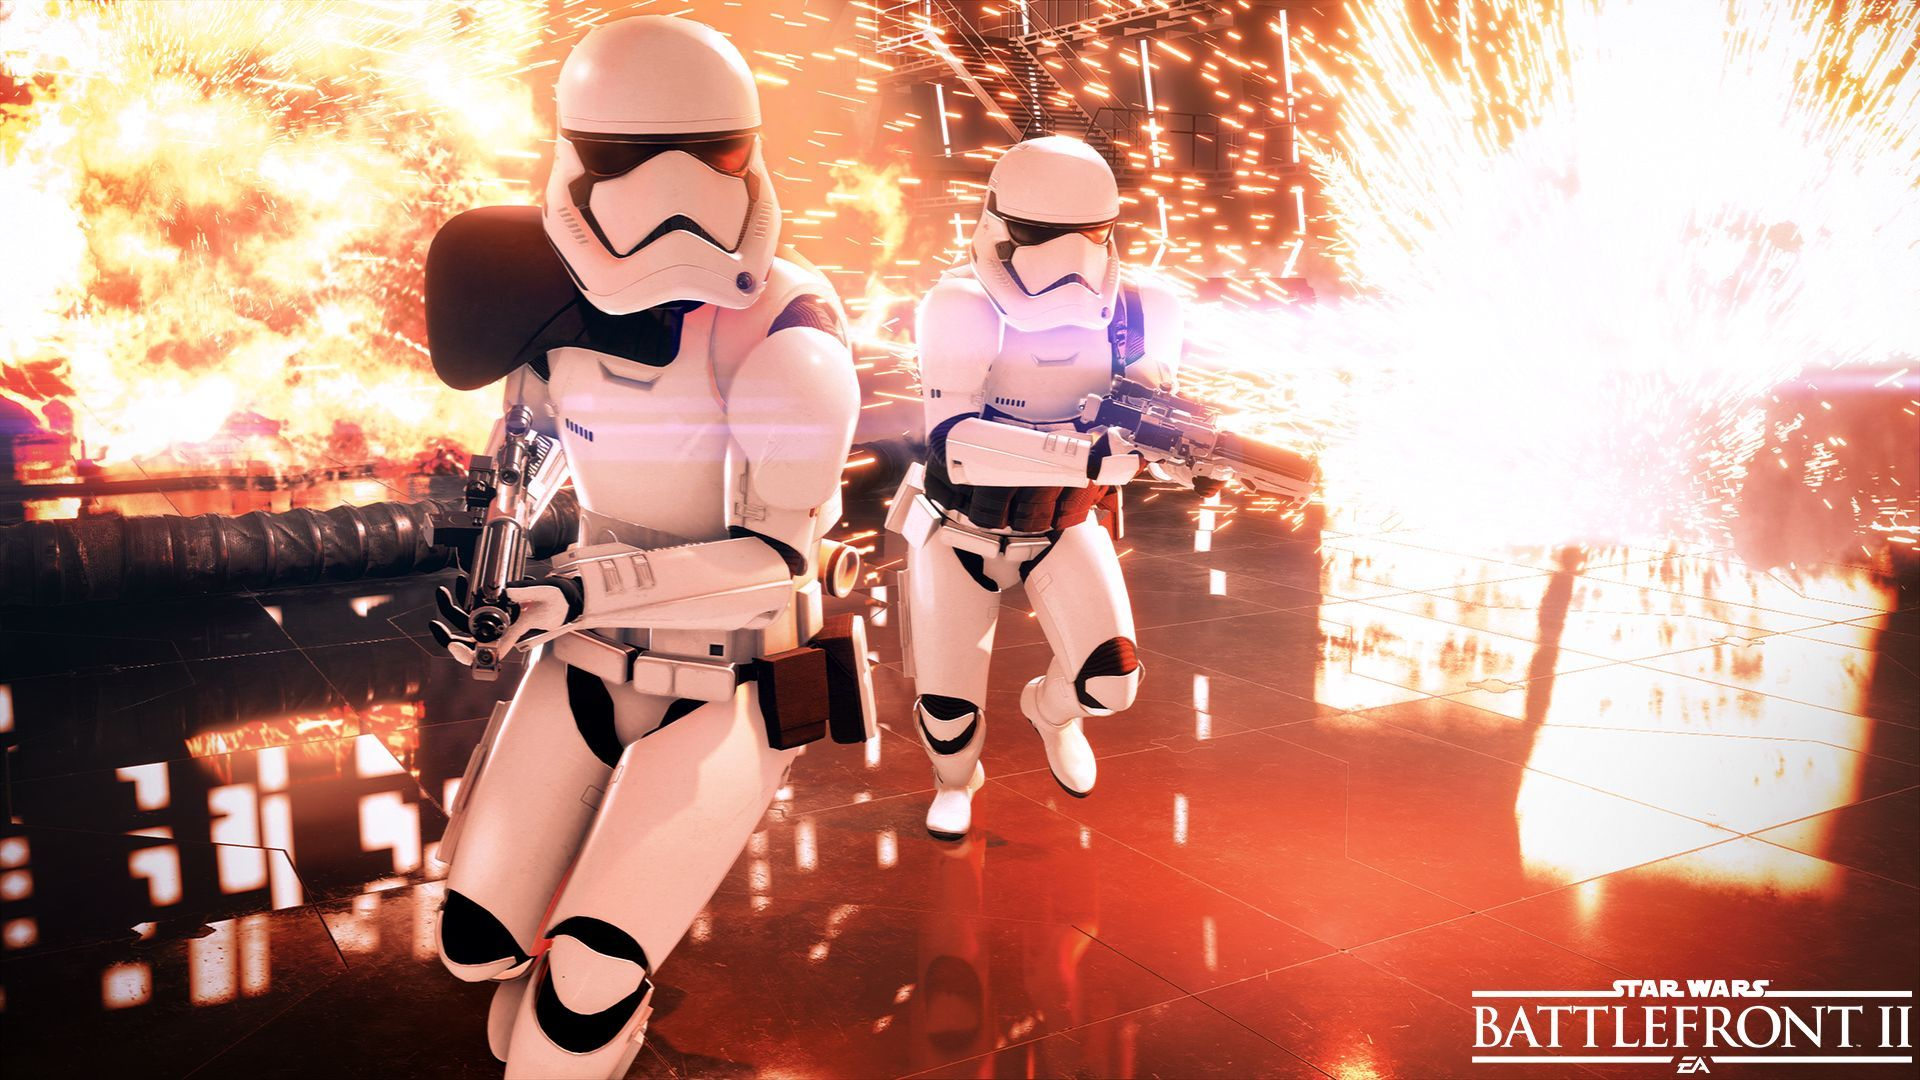 Star Wars Battlefront II (PS4) - 4